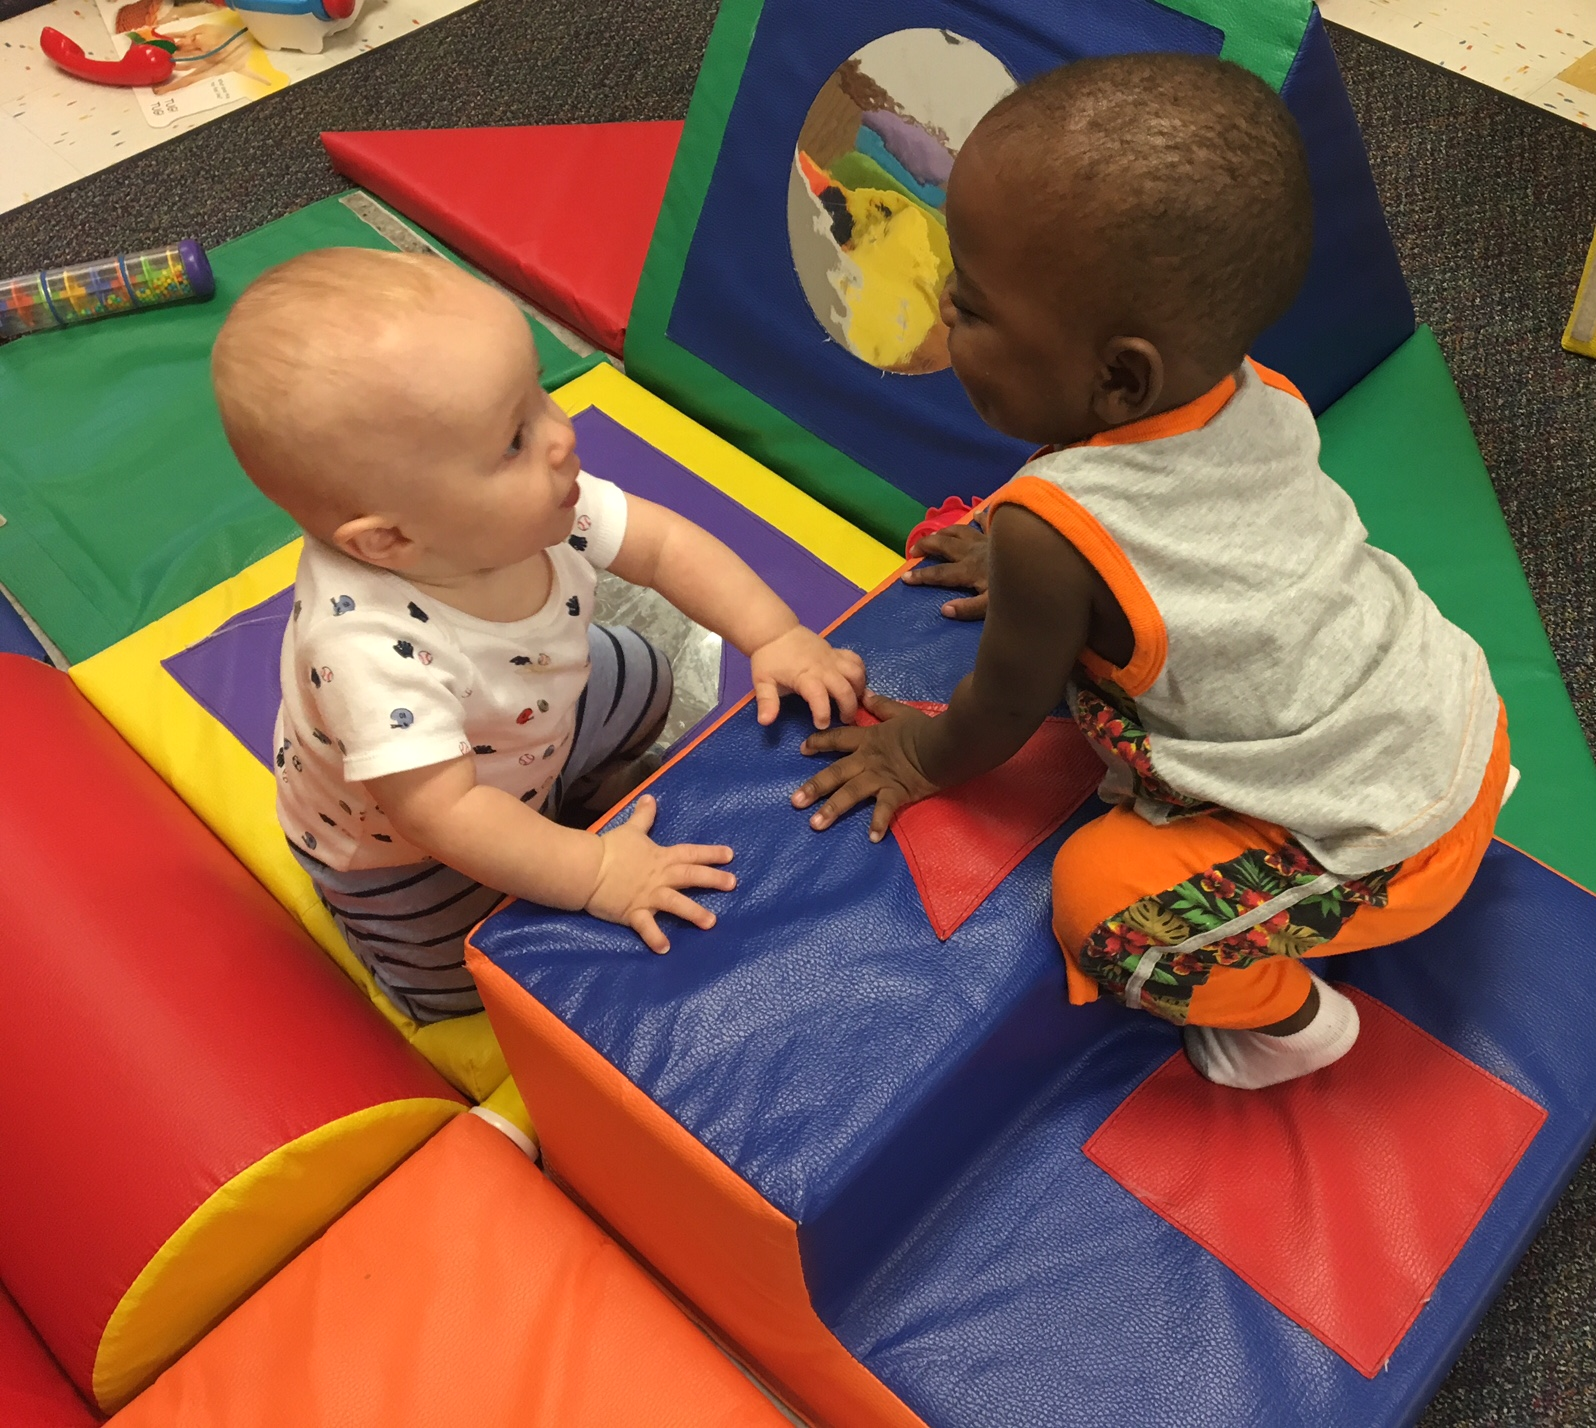 Jack and Brayden are playing together nicely which is helping to develop their social and emotional development.